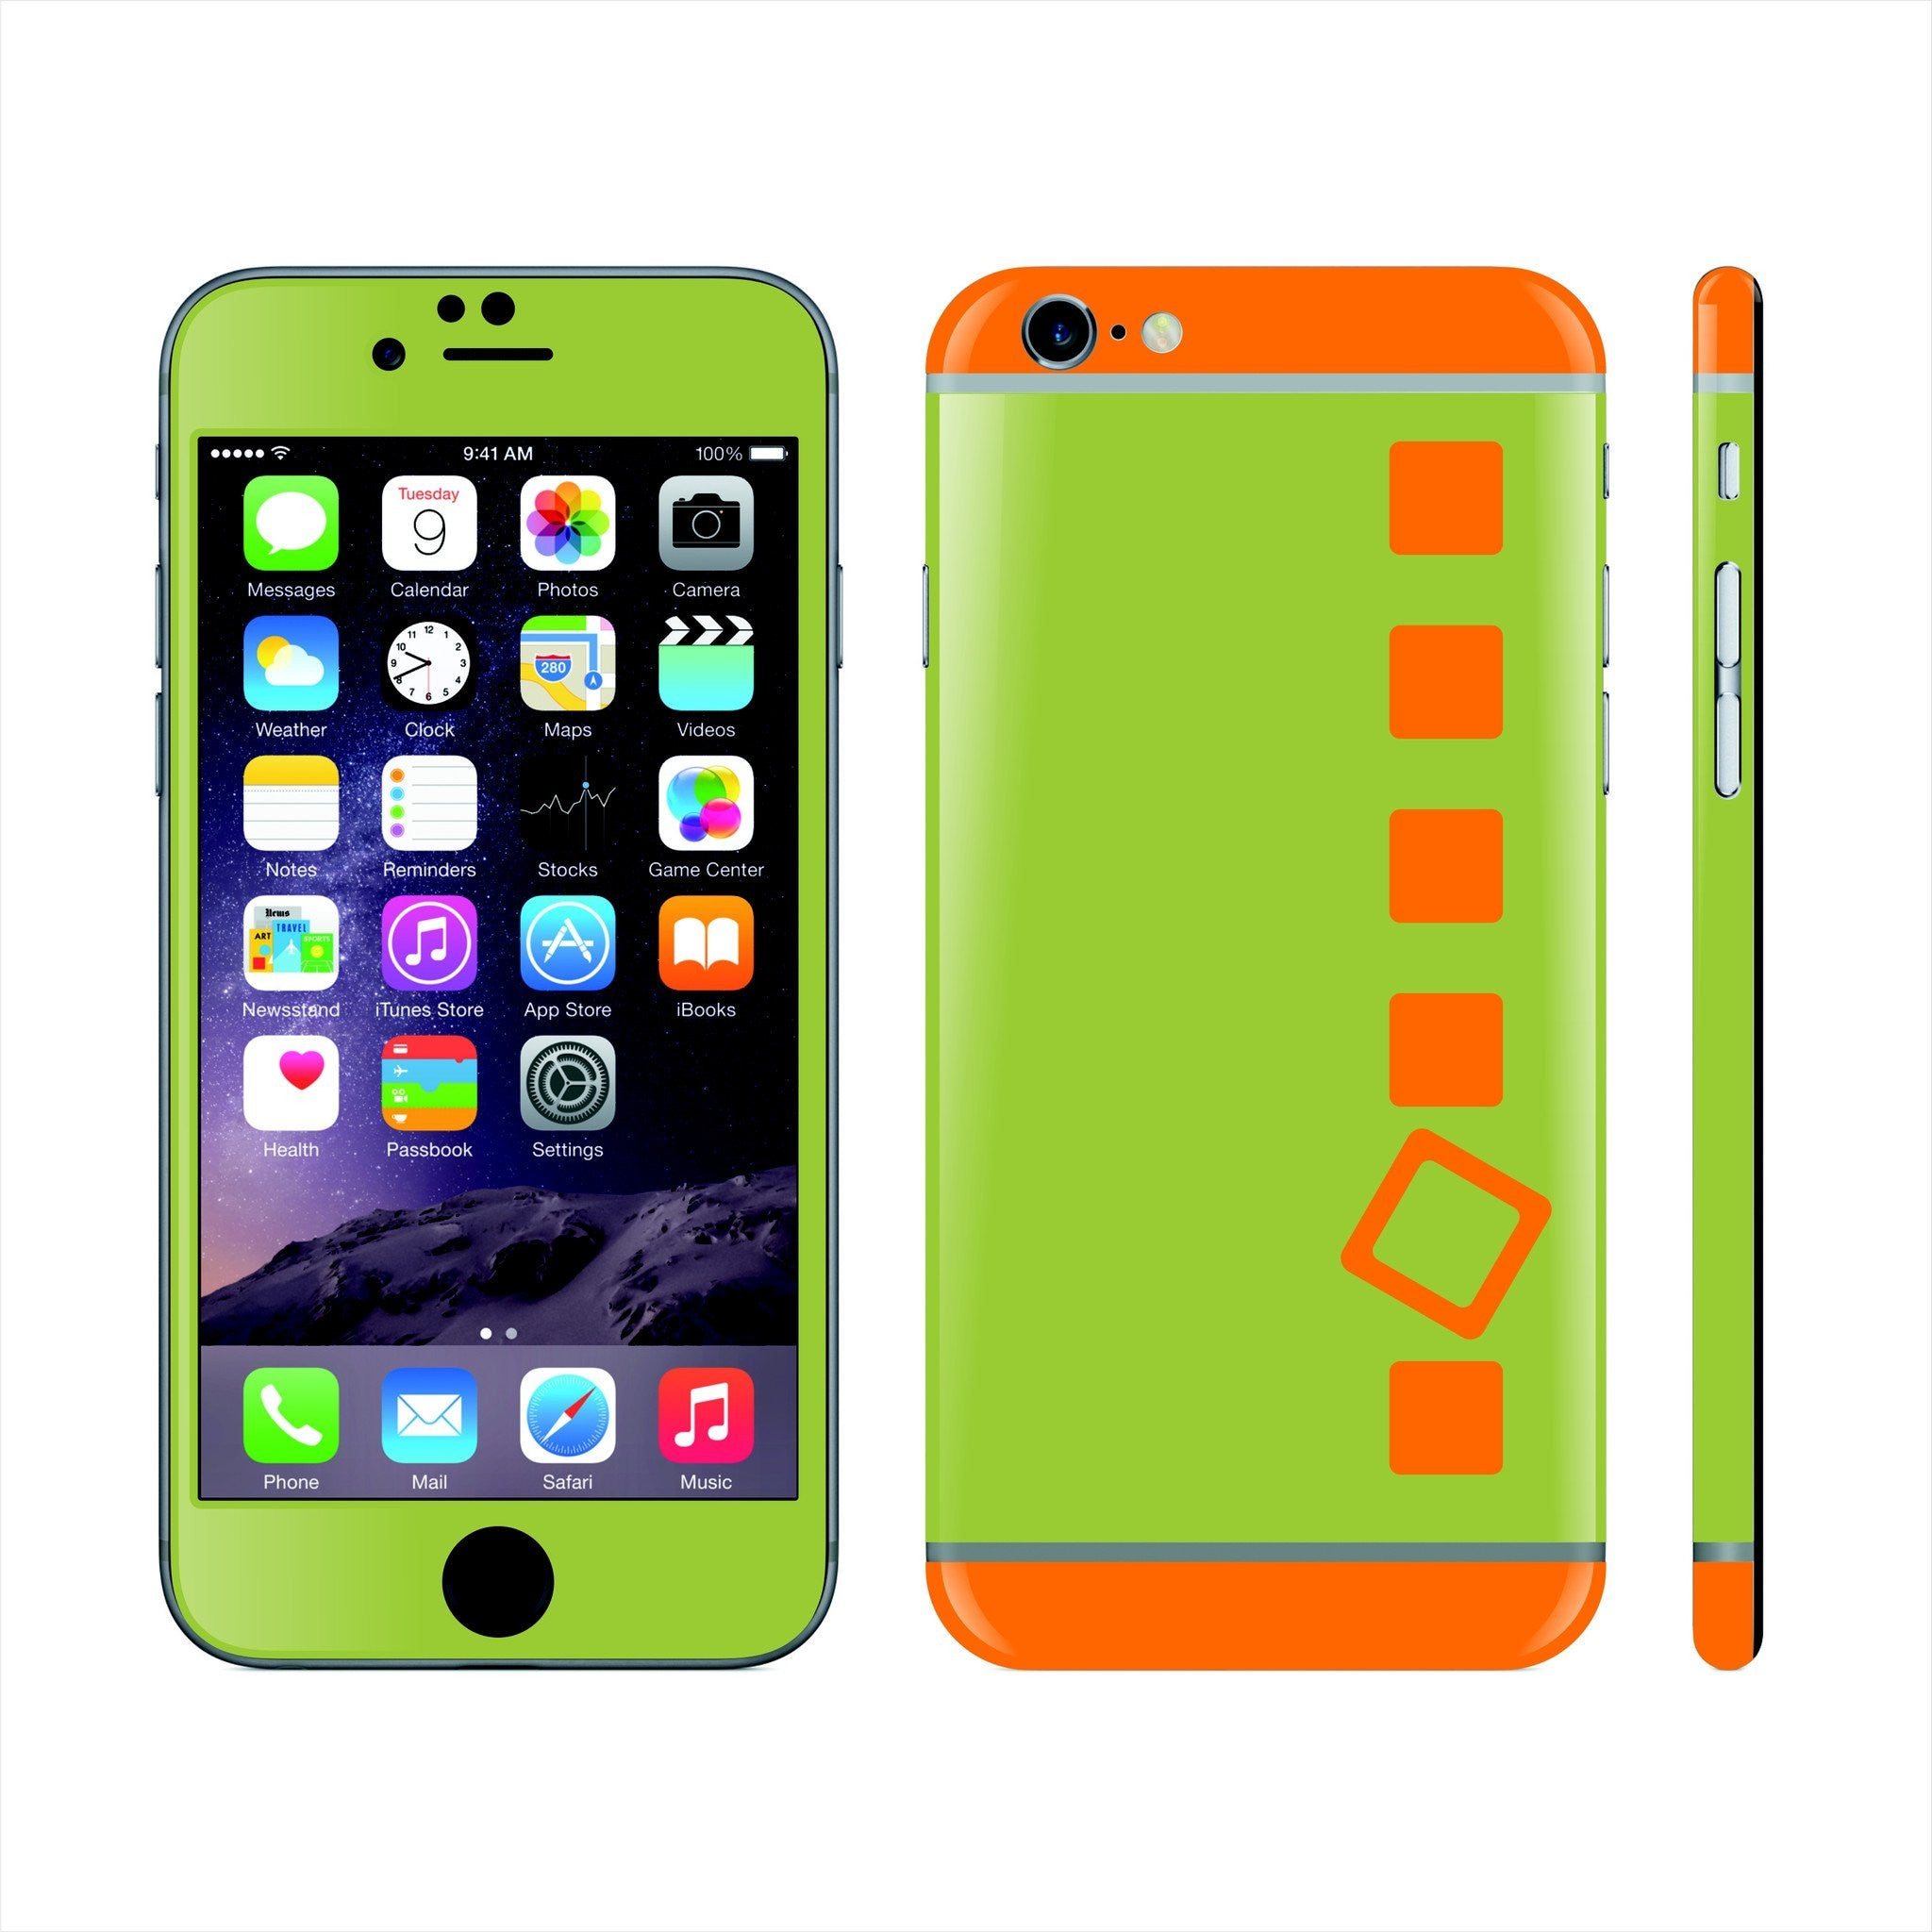 Iphone 6s custom colorful design edition abstract cubes 013 skin wrap sticker cover decal protector by